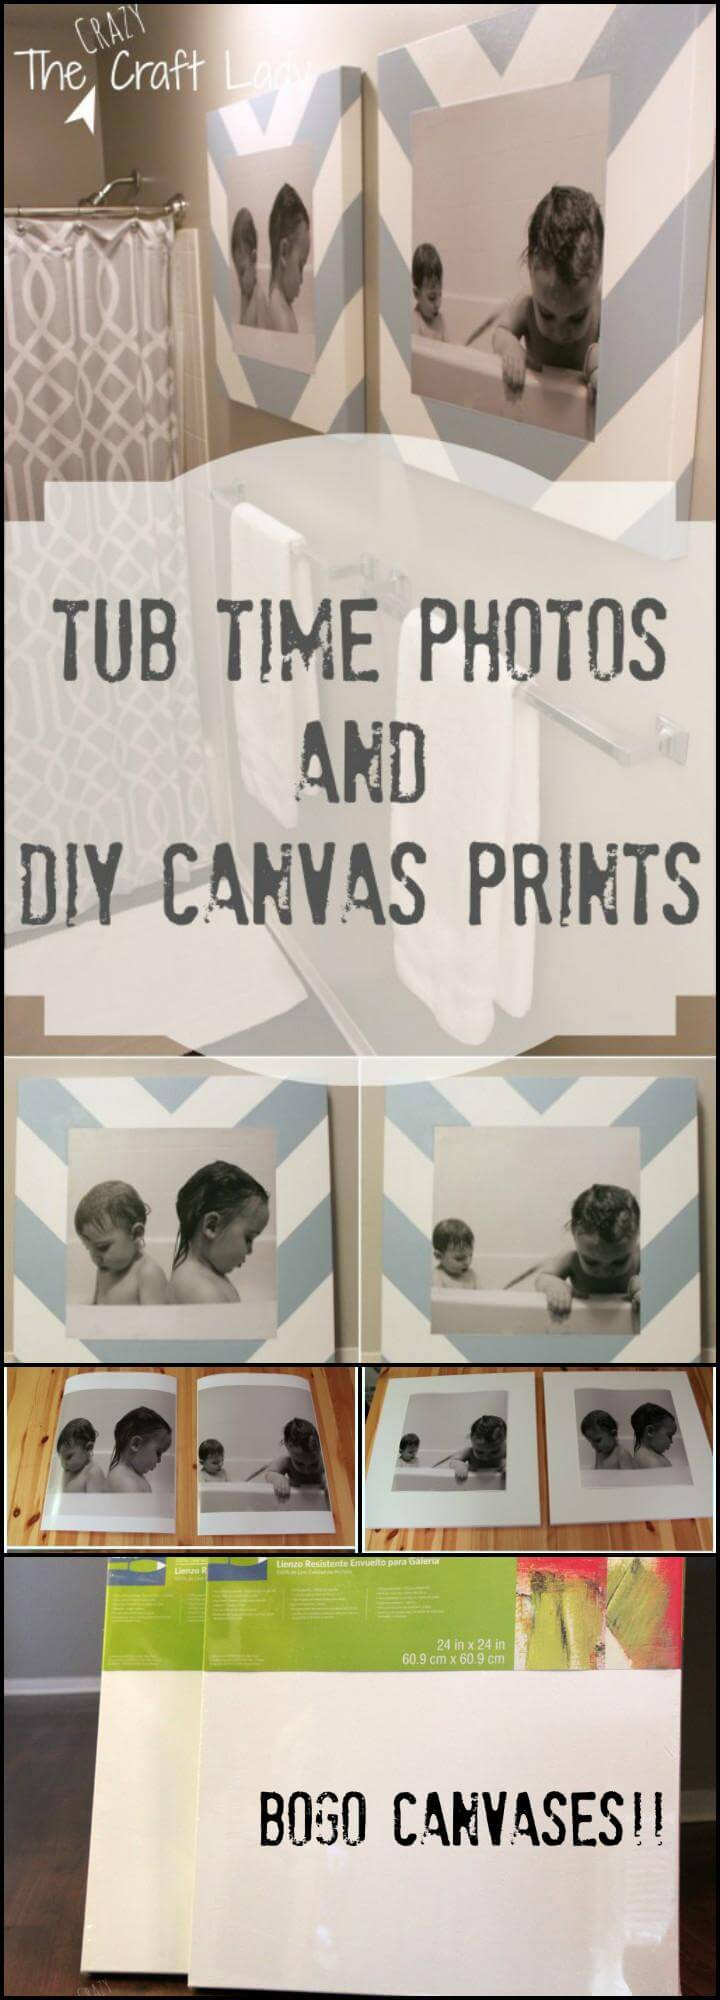 beautiful bathroom time photos and DIY canvas prints